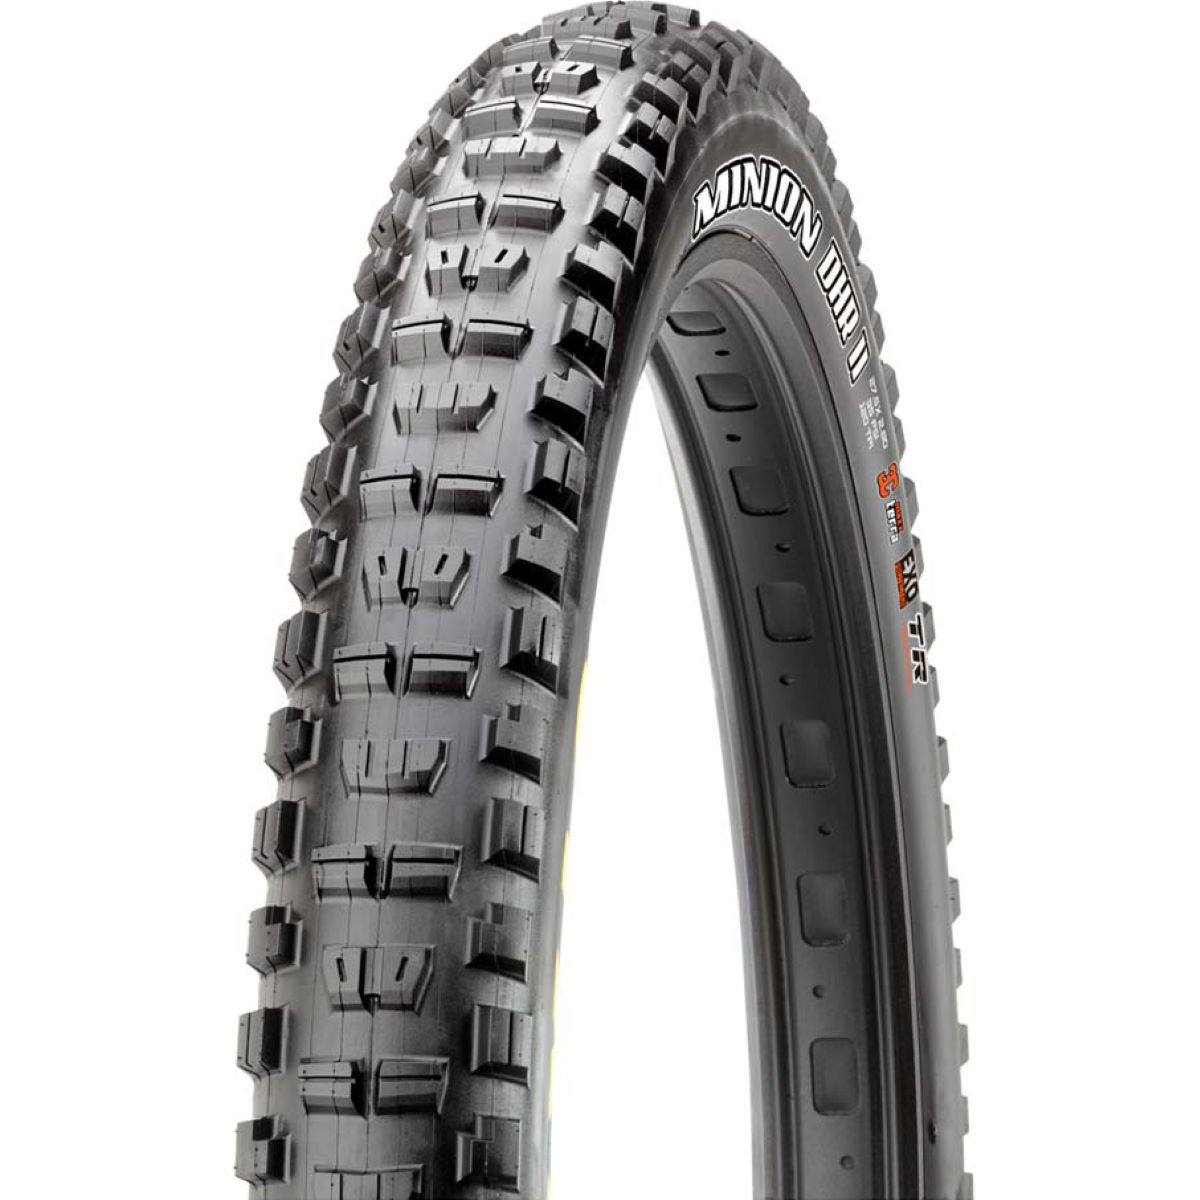 Maxxis Maxxis Minion DHR II WT Tyre - 3C - EXO - TR   Tyres